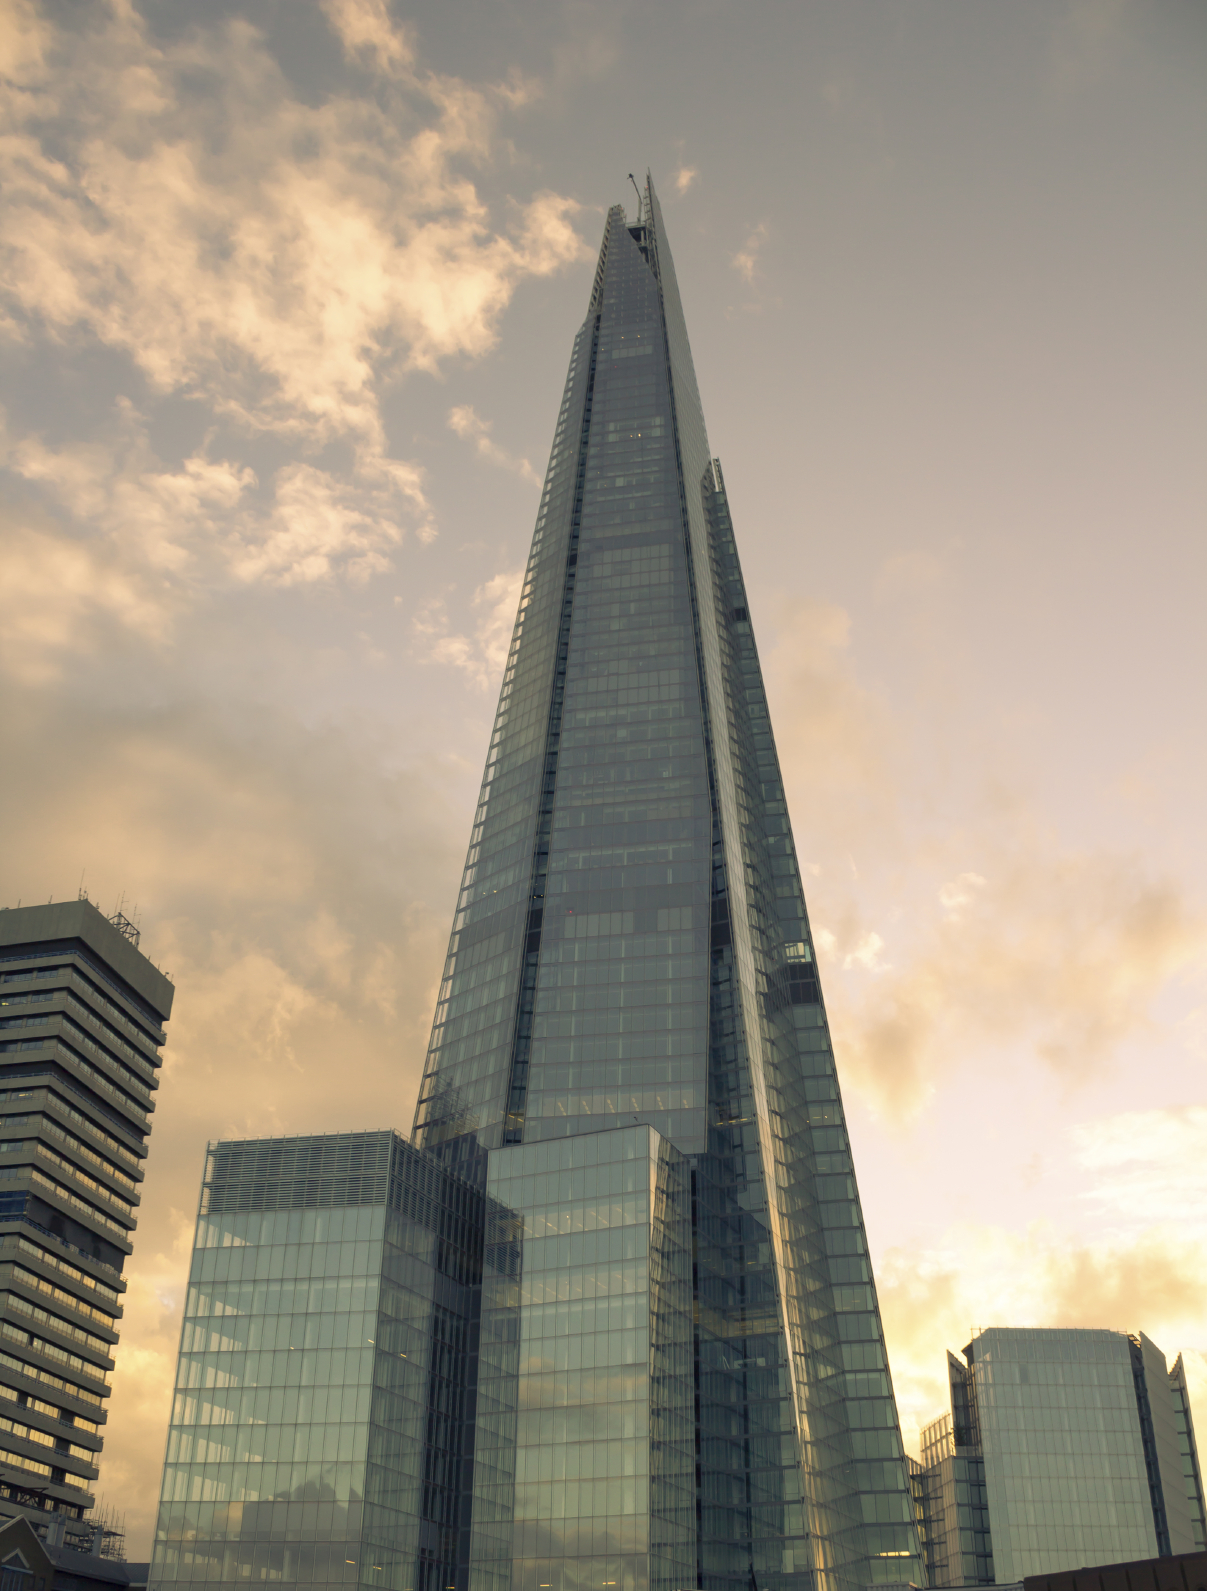 London – The Shard